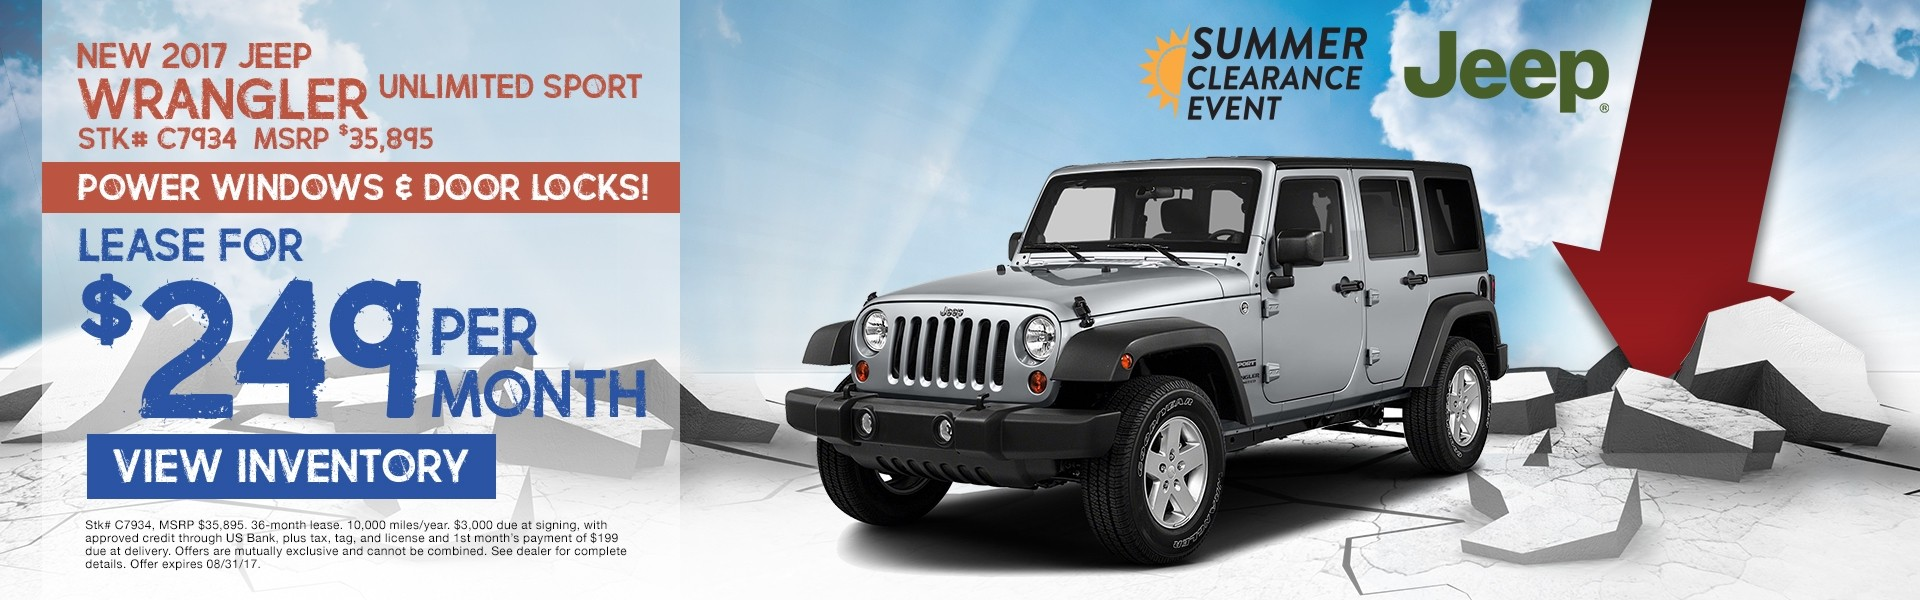 2017 Jeep Wrangler. Lease for just $249/month.